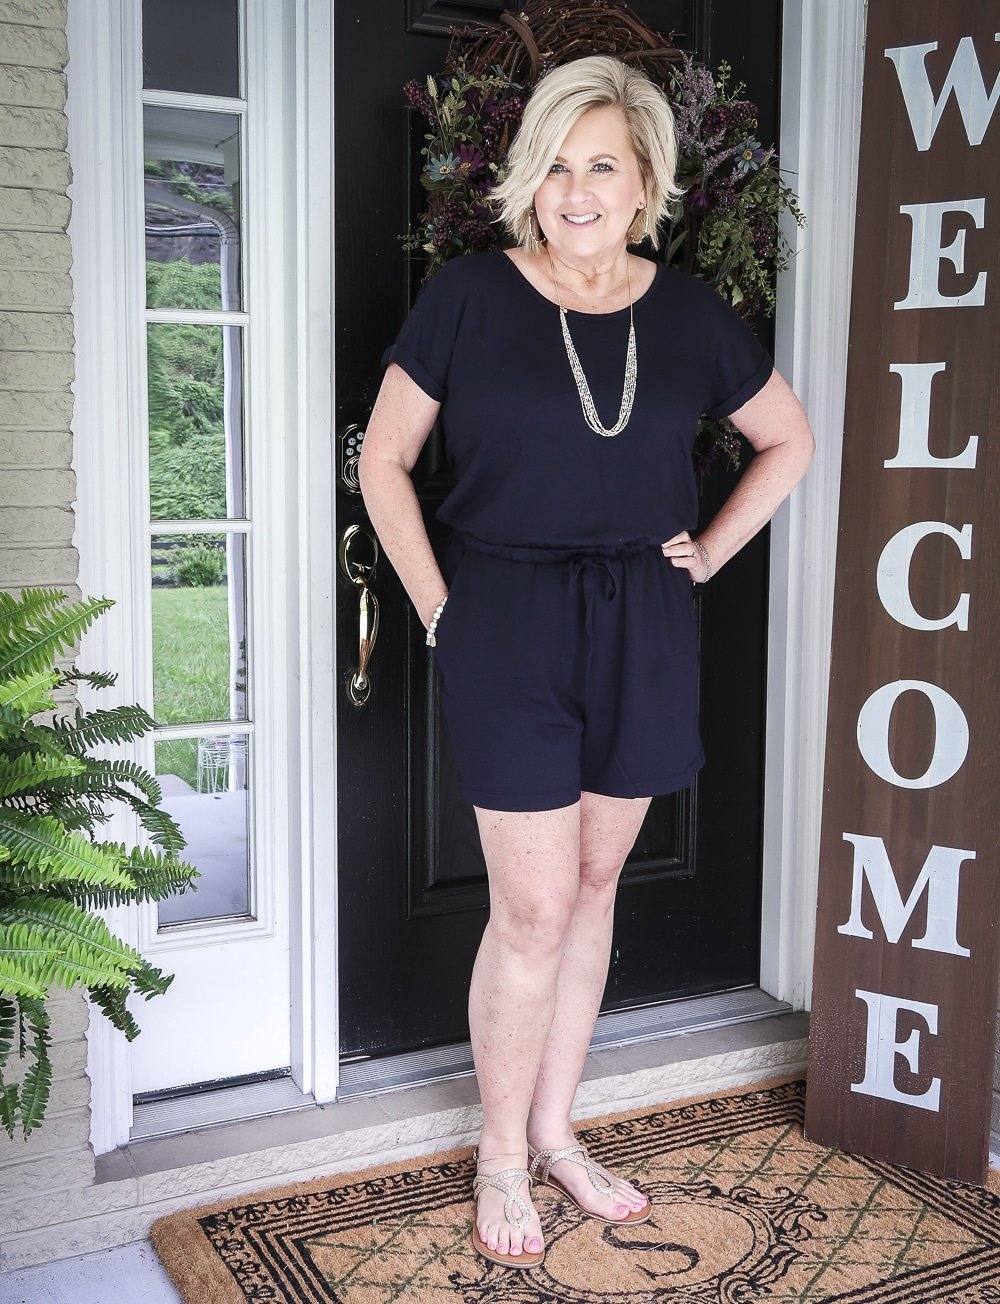 Fashion Blogger 50 Is Not Old is wearing a navy romper with gold braided sandals and gold jewelry